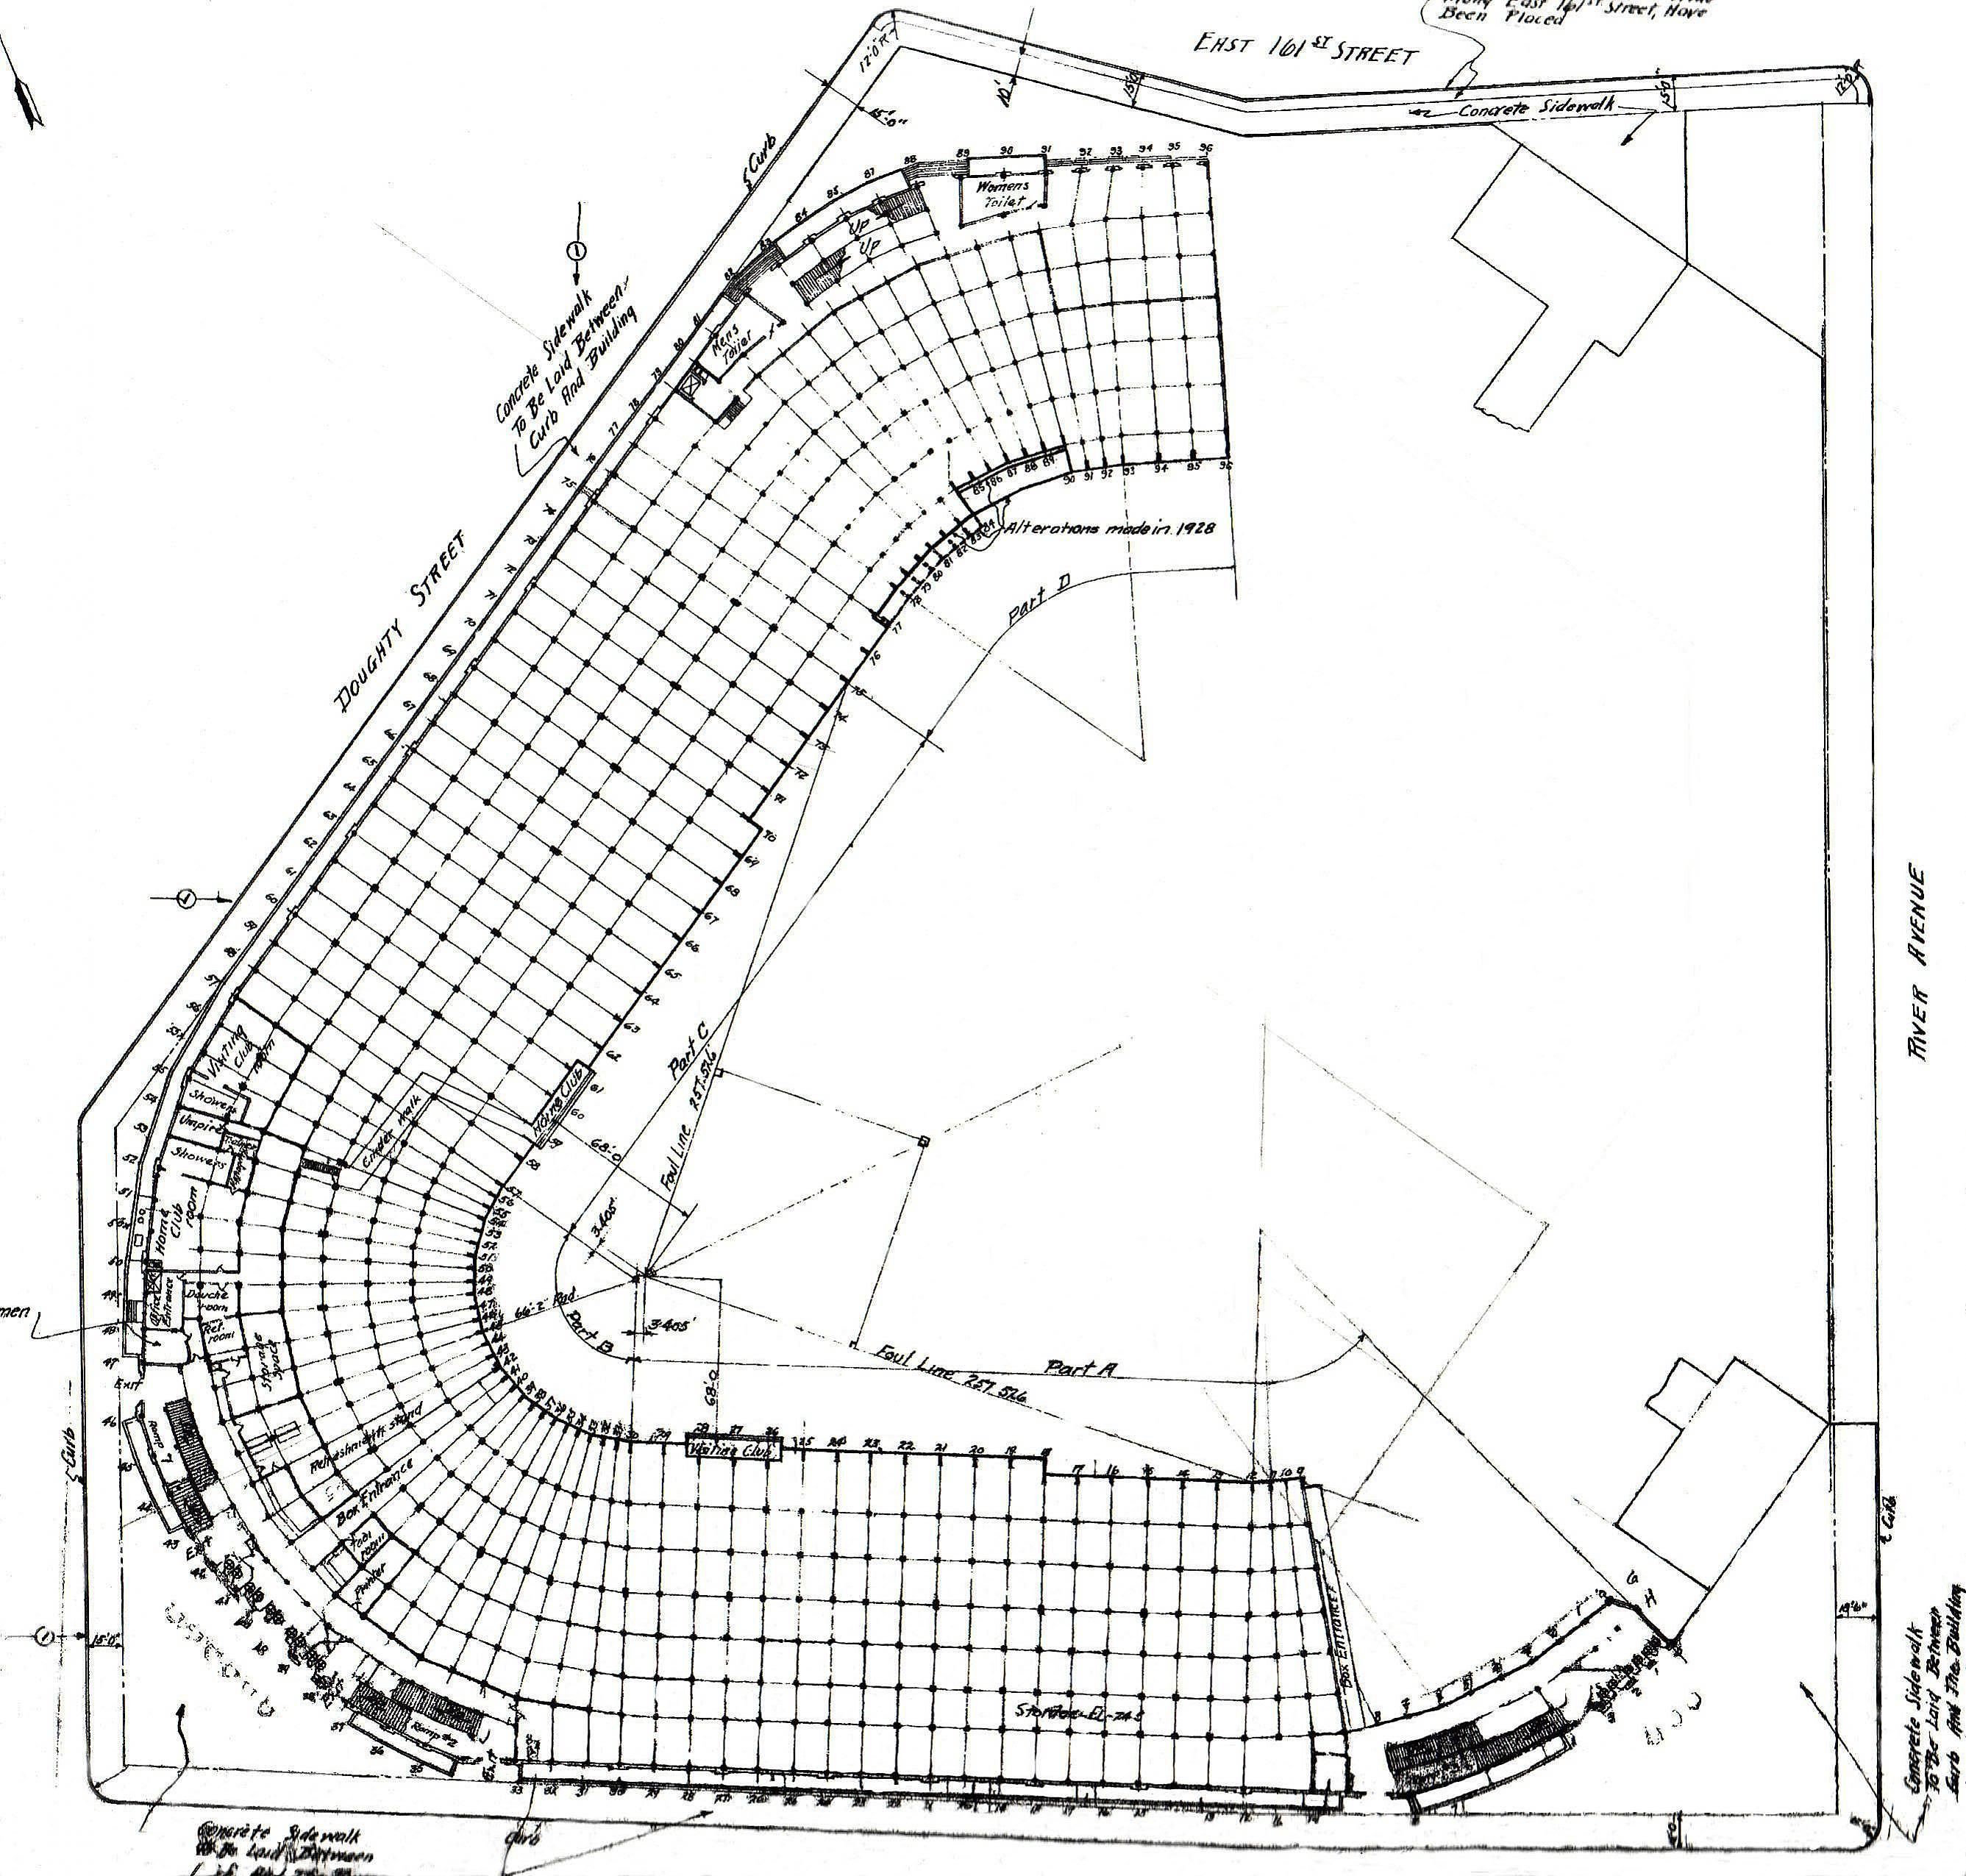 Old yankee stadium blueprint sports architecture pinterest old yankee stadium blueprint malvernweather Gallery